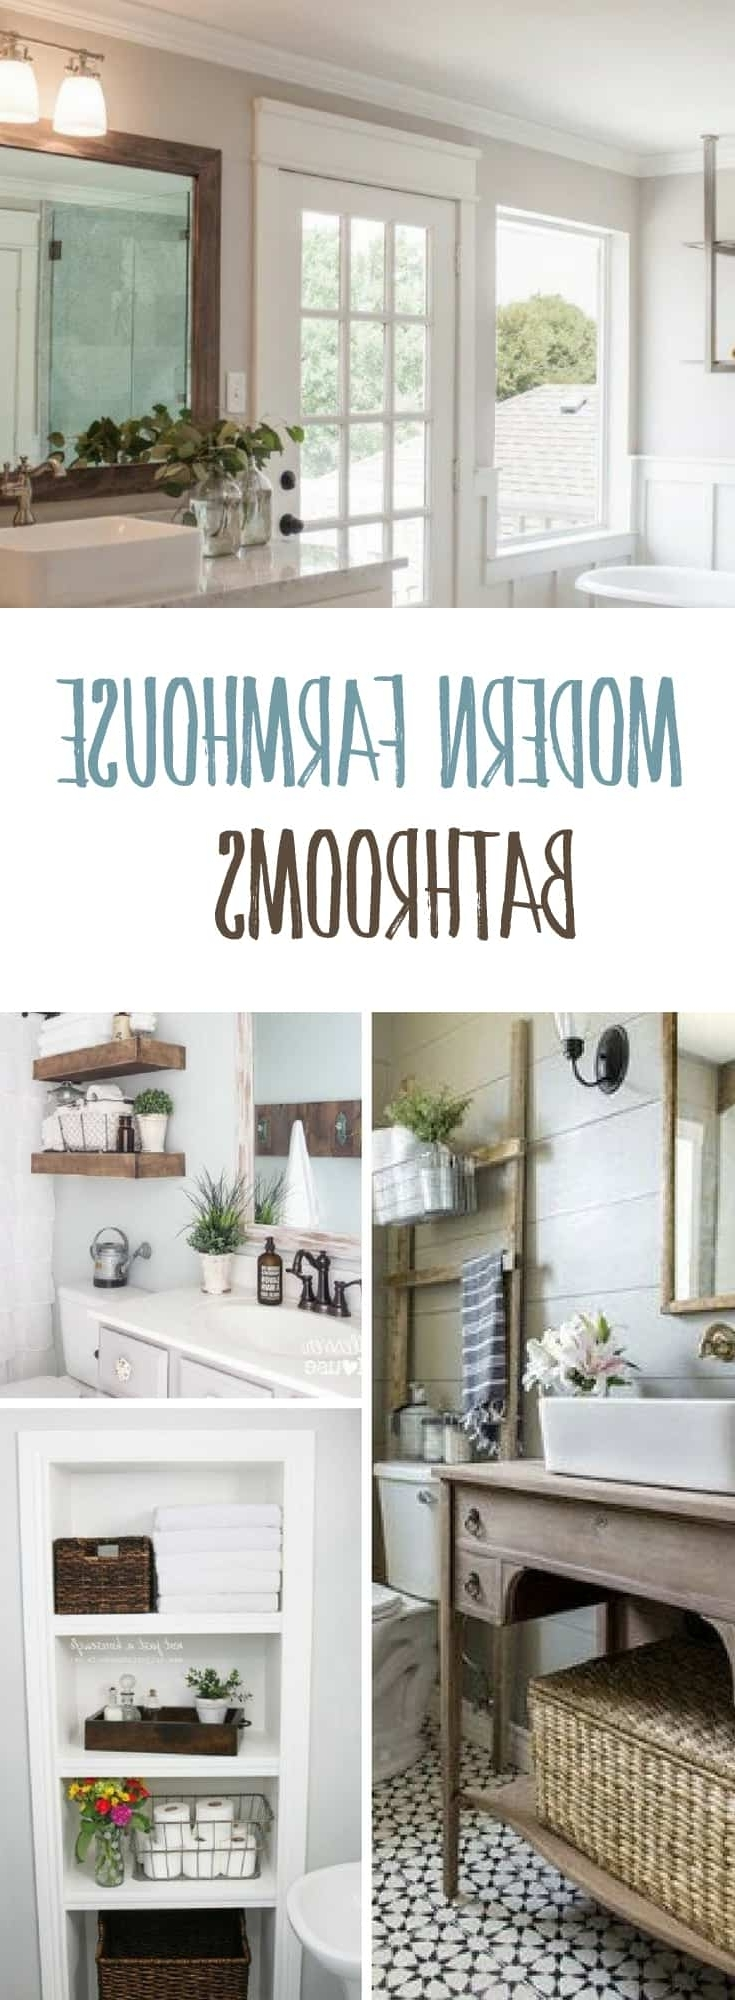 Bathroom Ideas Inspiredjoanna Gaines And Fixer Upper 30+ Fixer Upper Bathroom Design Inspirations